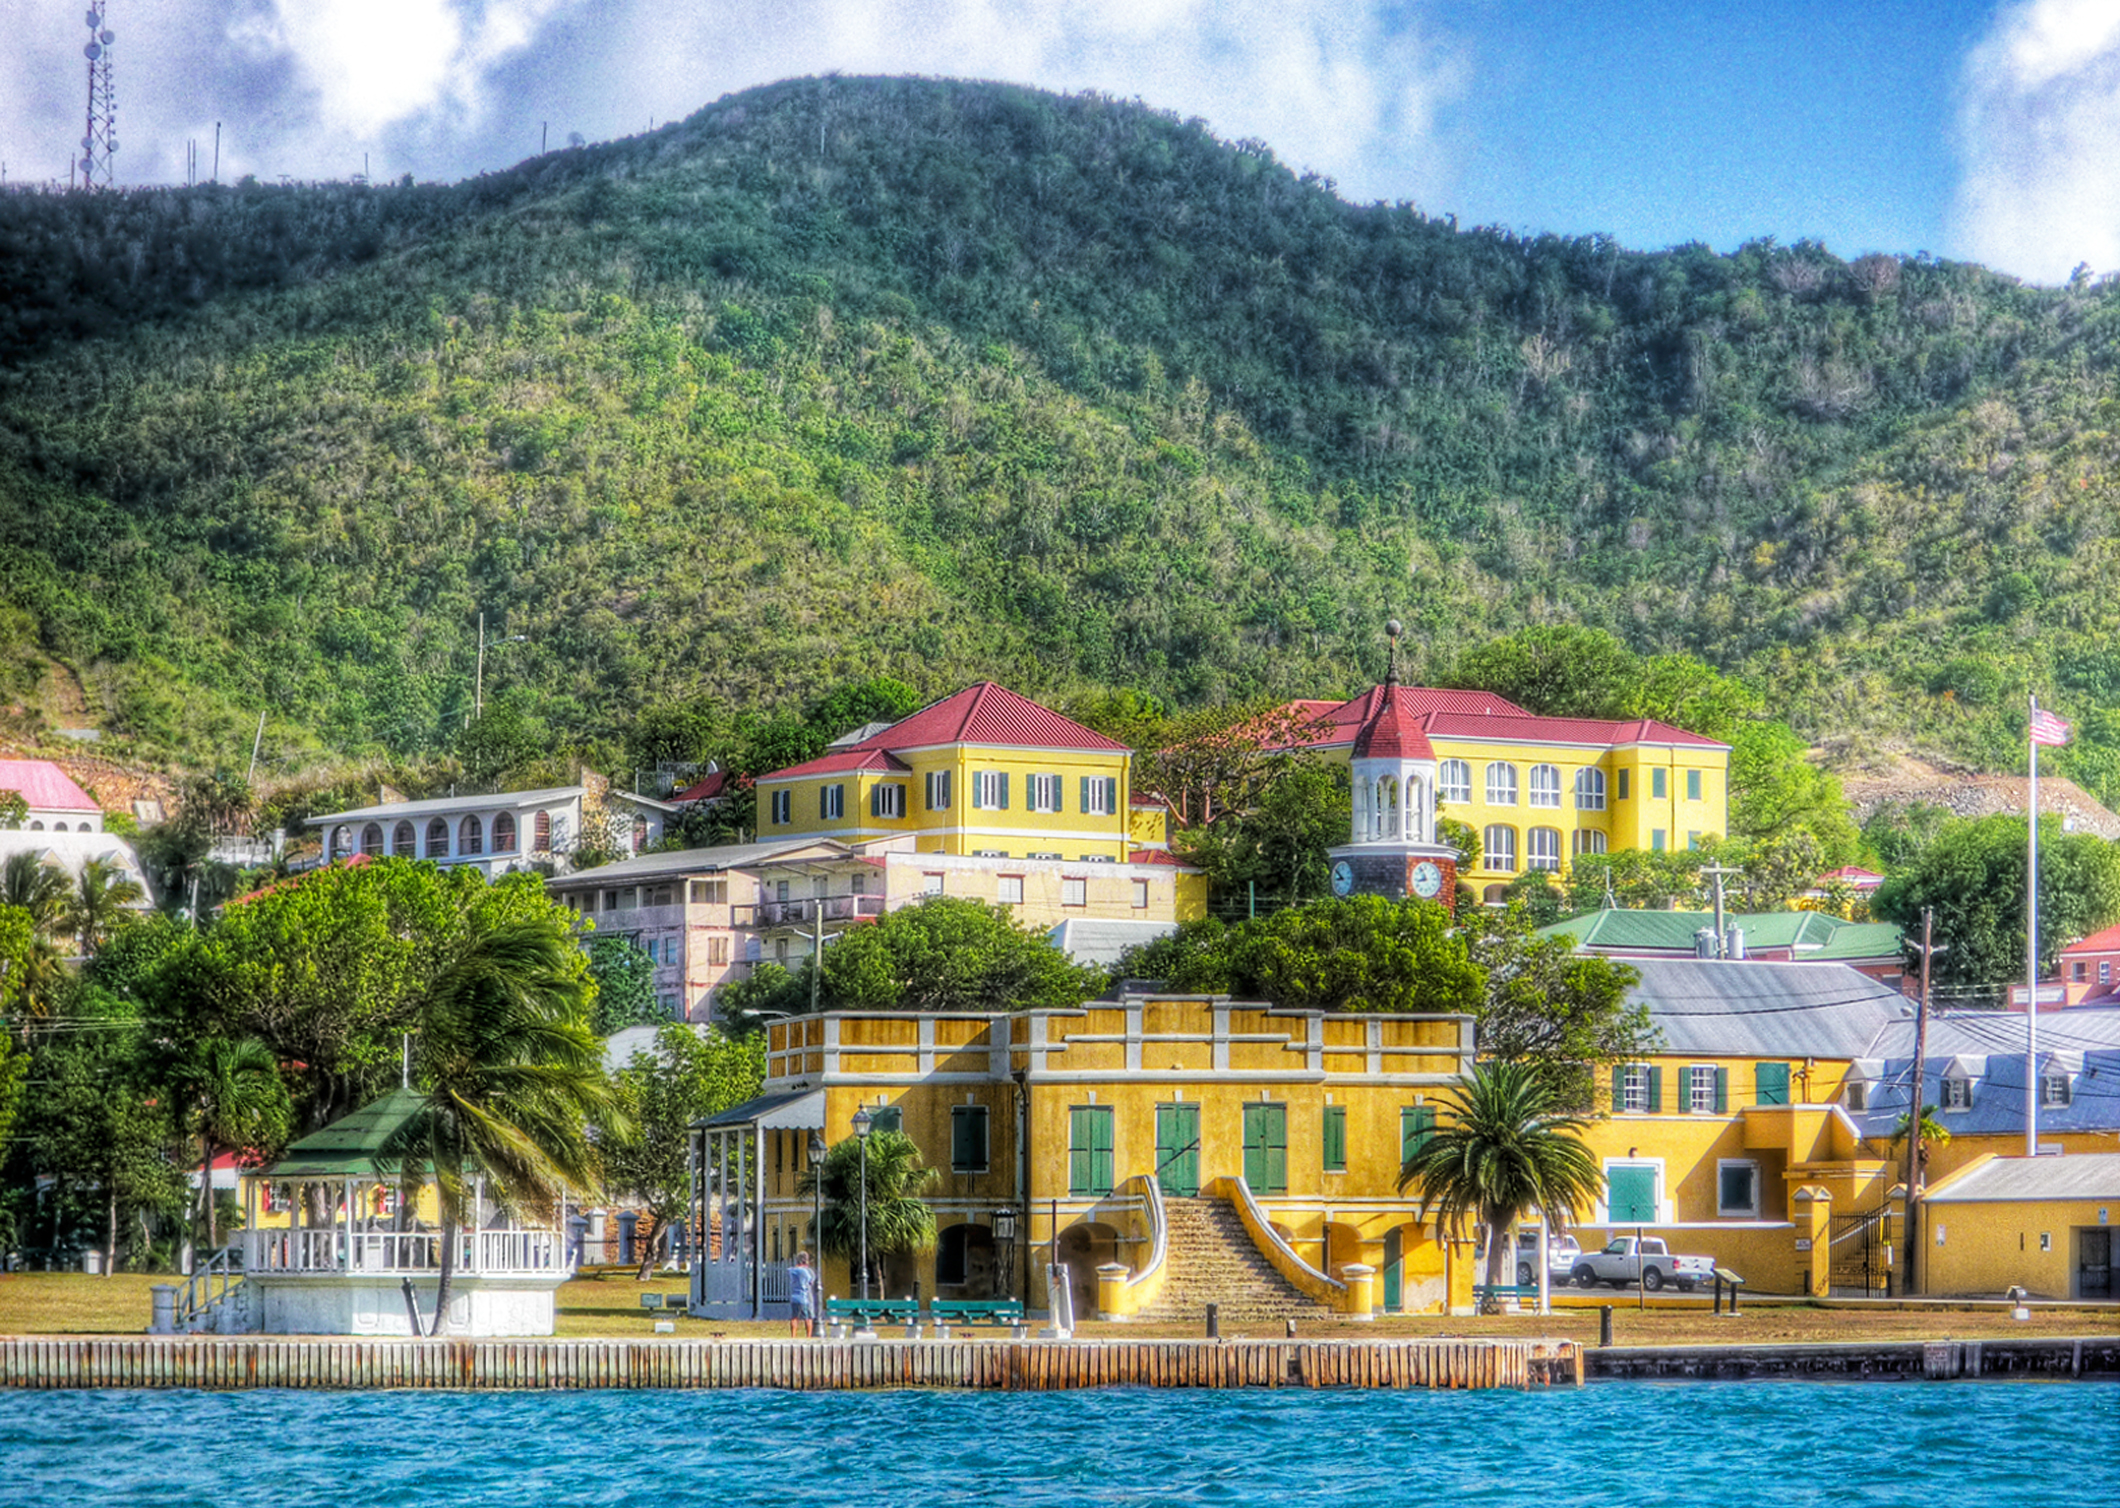 Christiansted Waterfront.jpg